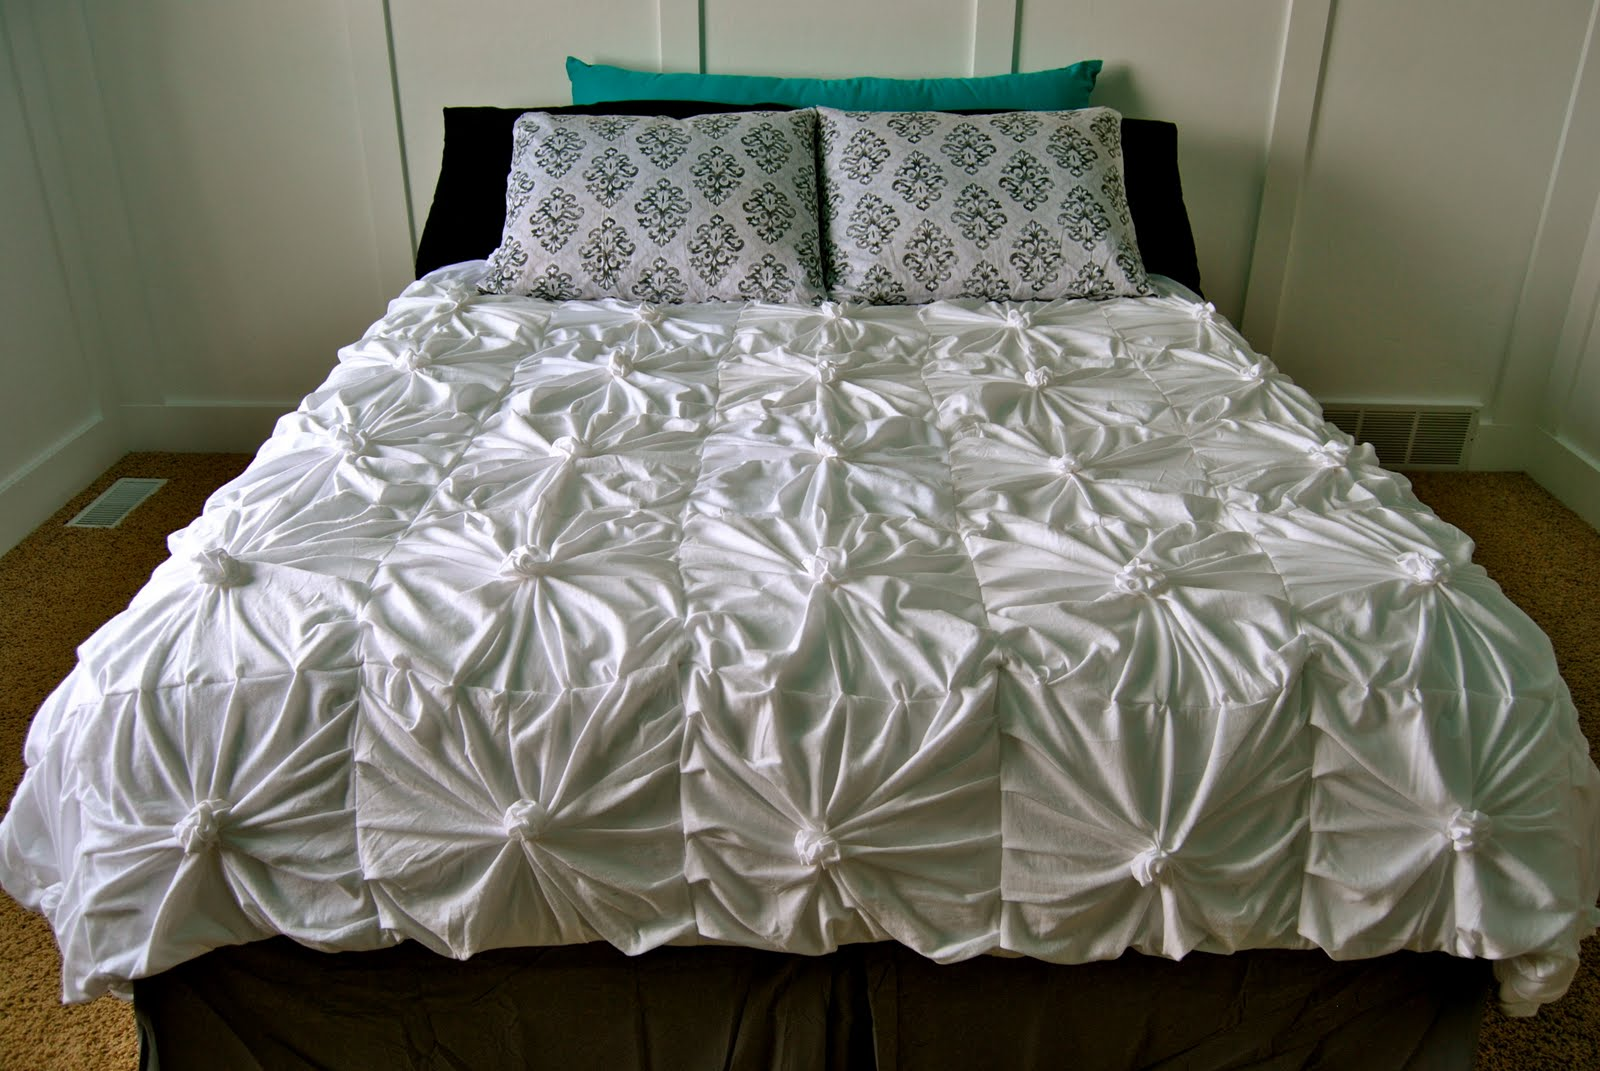 Anthropologie bedding - Anthropologie Inspired Knotted Bedding Also Inspired By Kojodesigns